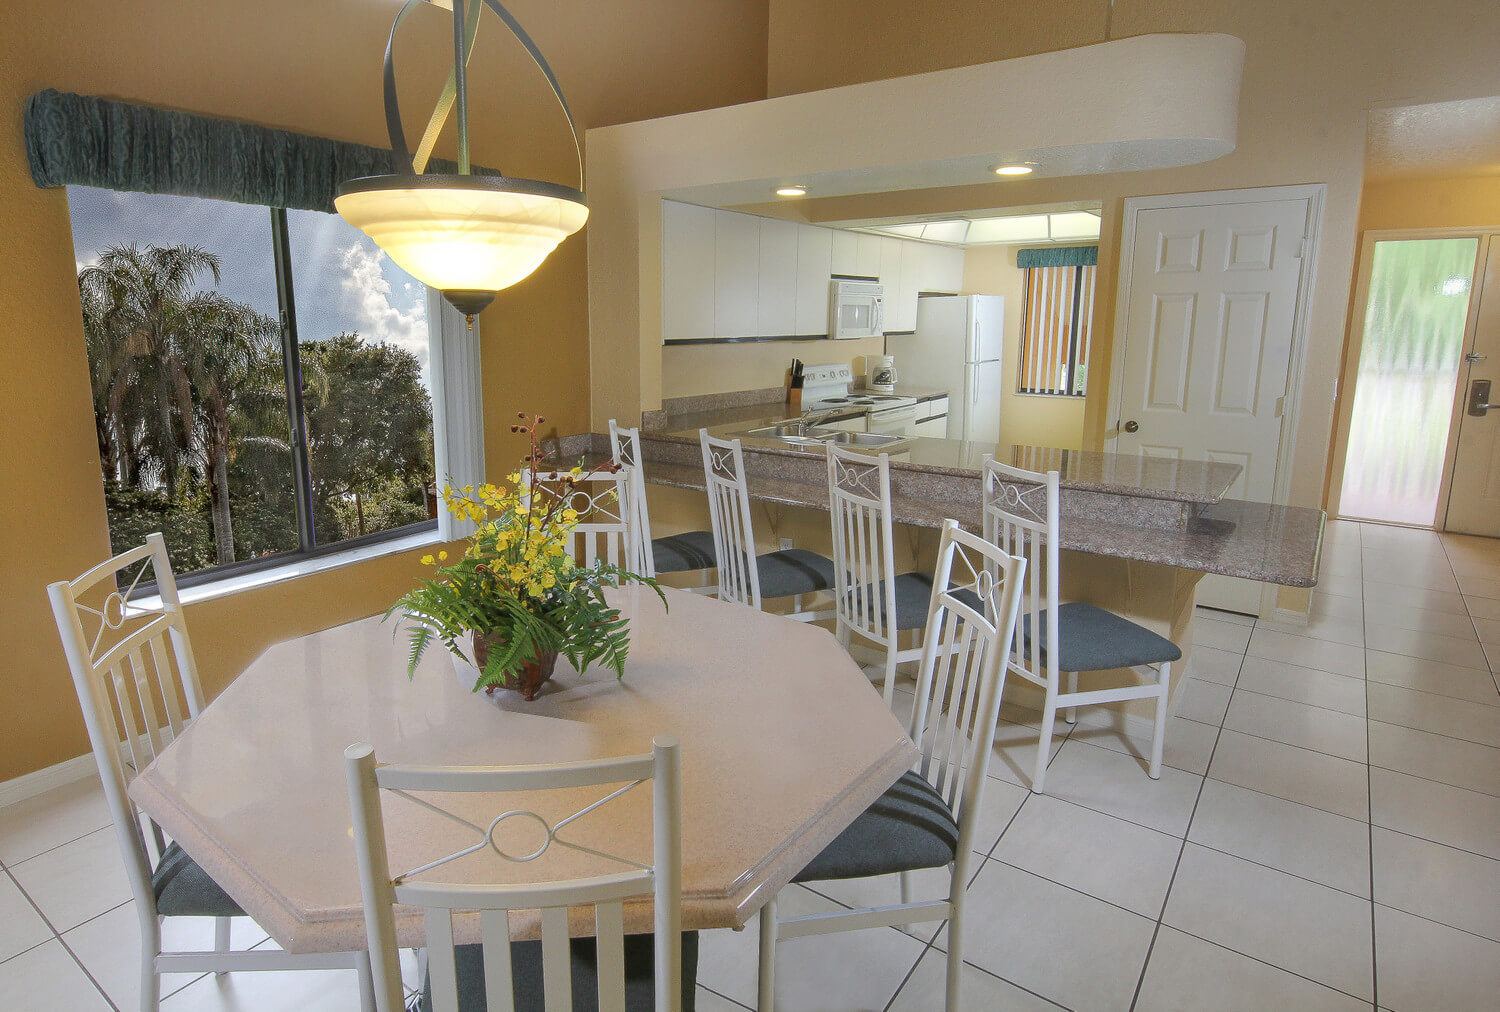 Orlando Hotel 2 Bedroom Suites Westgate Vacation Villas 2 Bedroom Suites Near Disney World